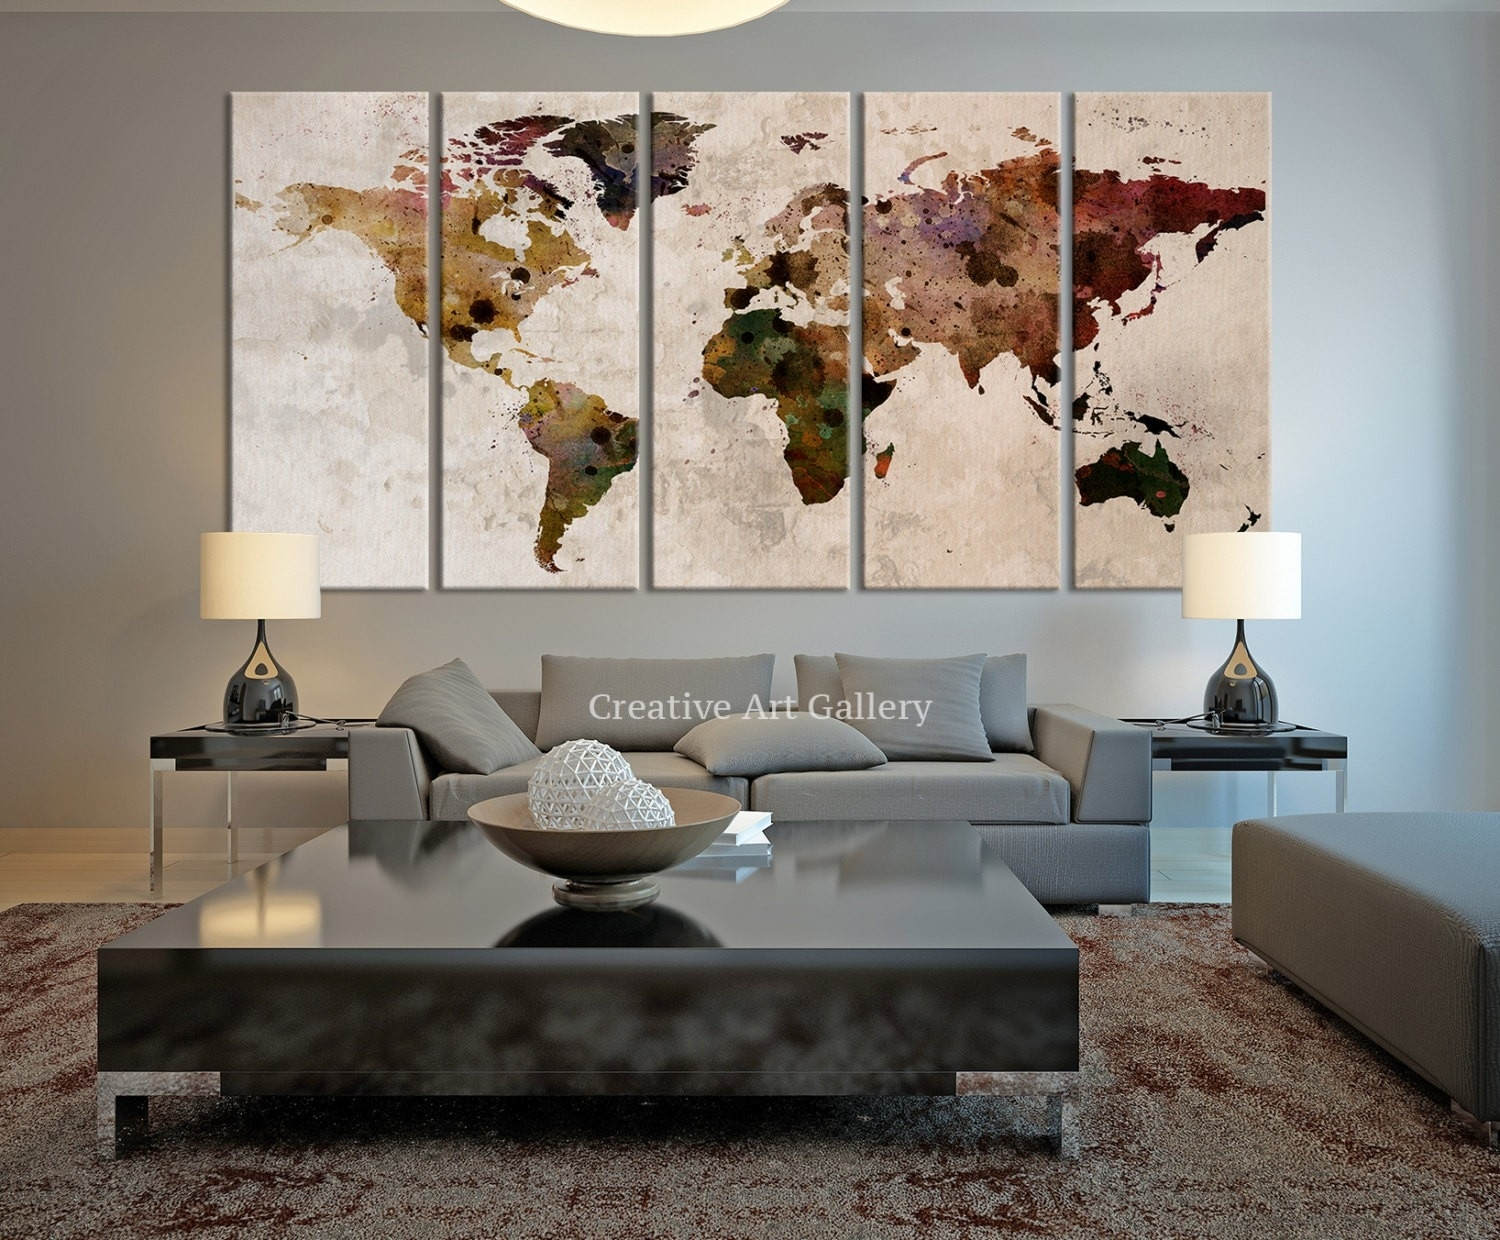 Antique World Map On Canvas Fresh 20 Rustic Wall Decor Ideas To Within Most Current Rustic Canvas Wall Art (View 2 of 15)